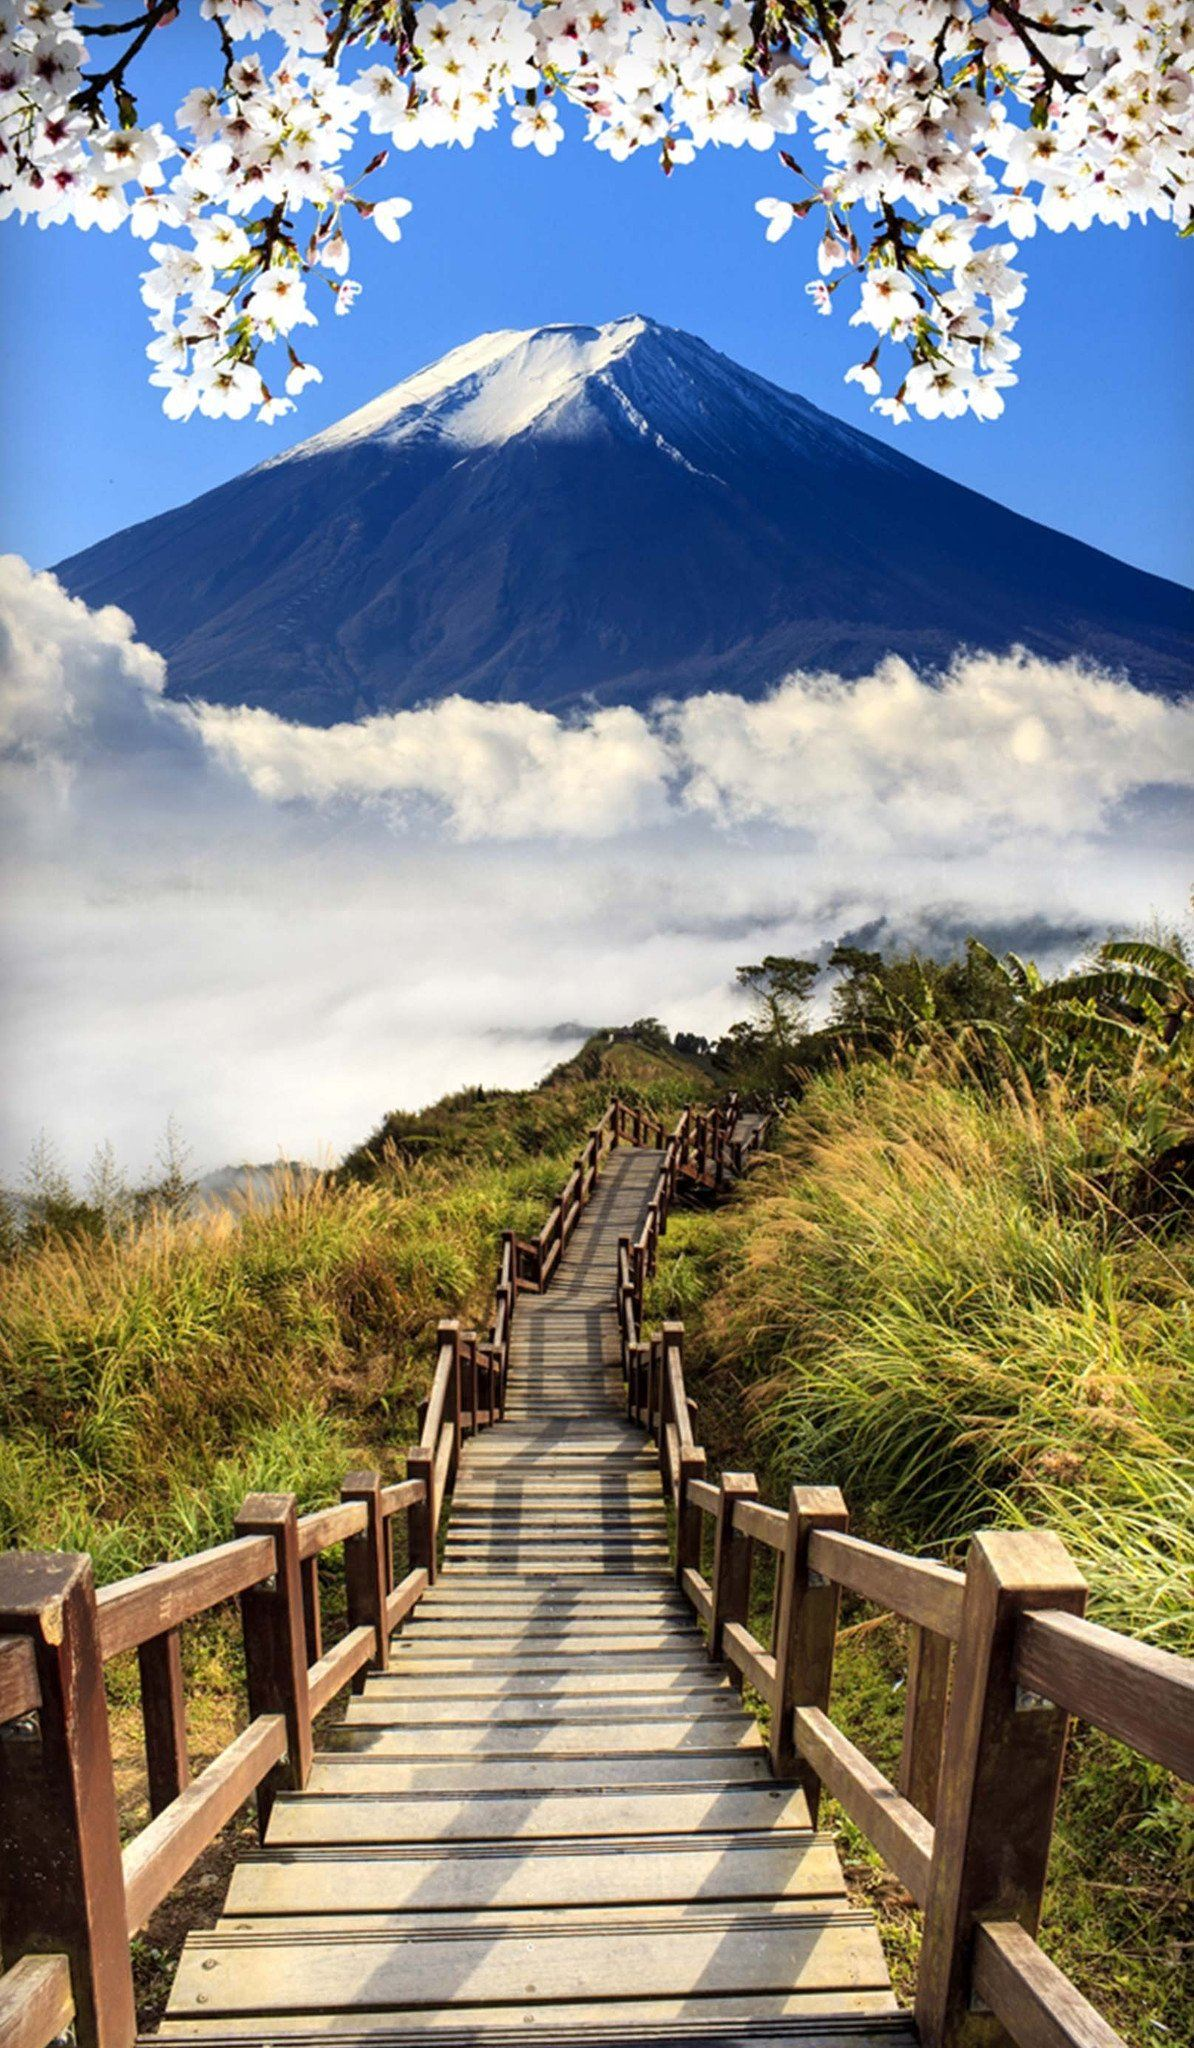 3D Mount Fuji Wooden Stairs 65 Door Mural Wallpaper AJ Wallpaper